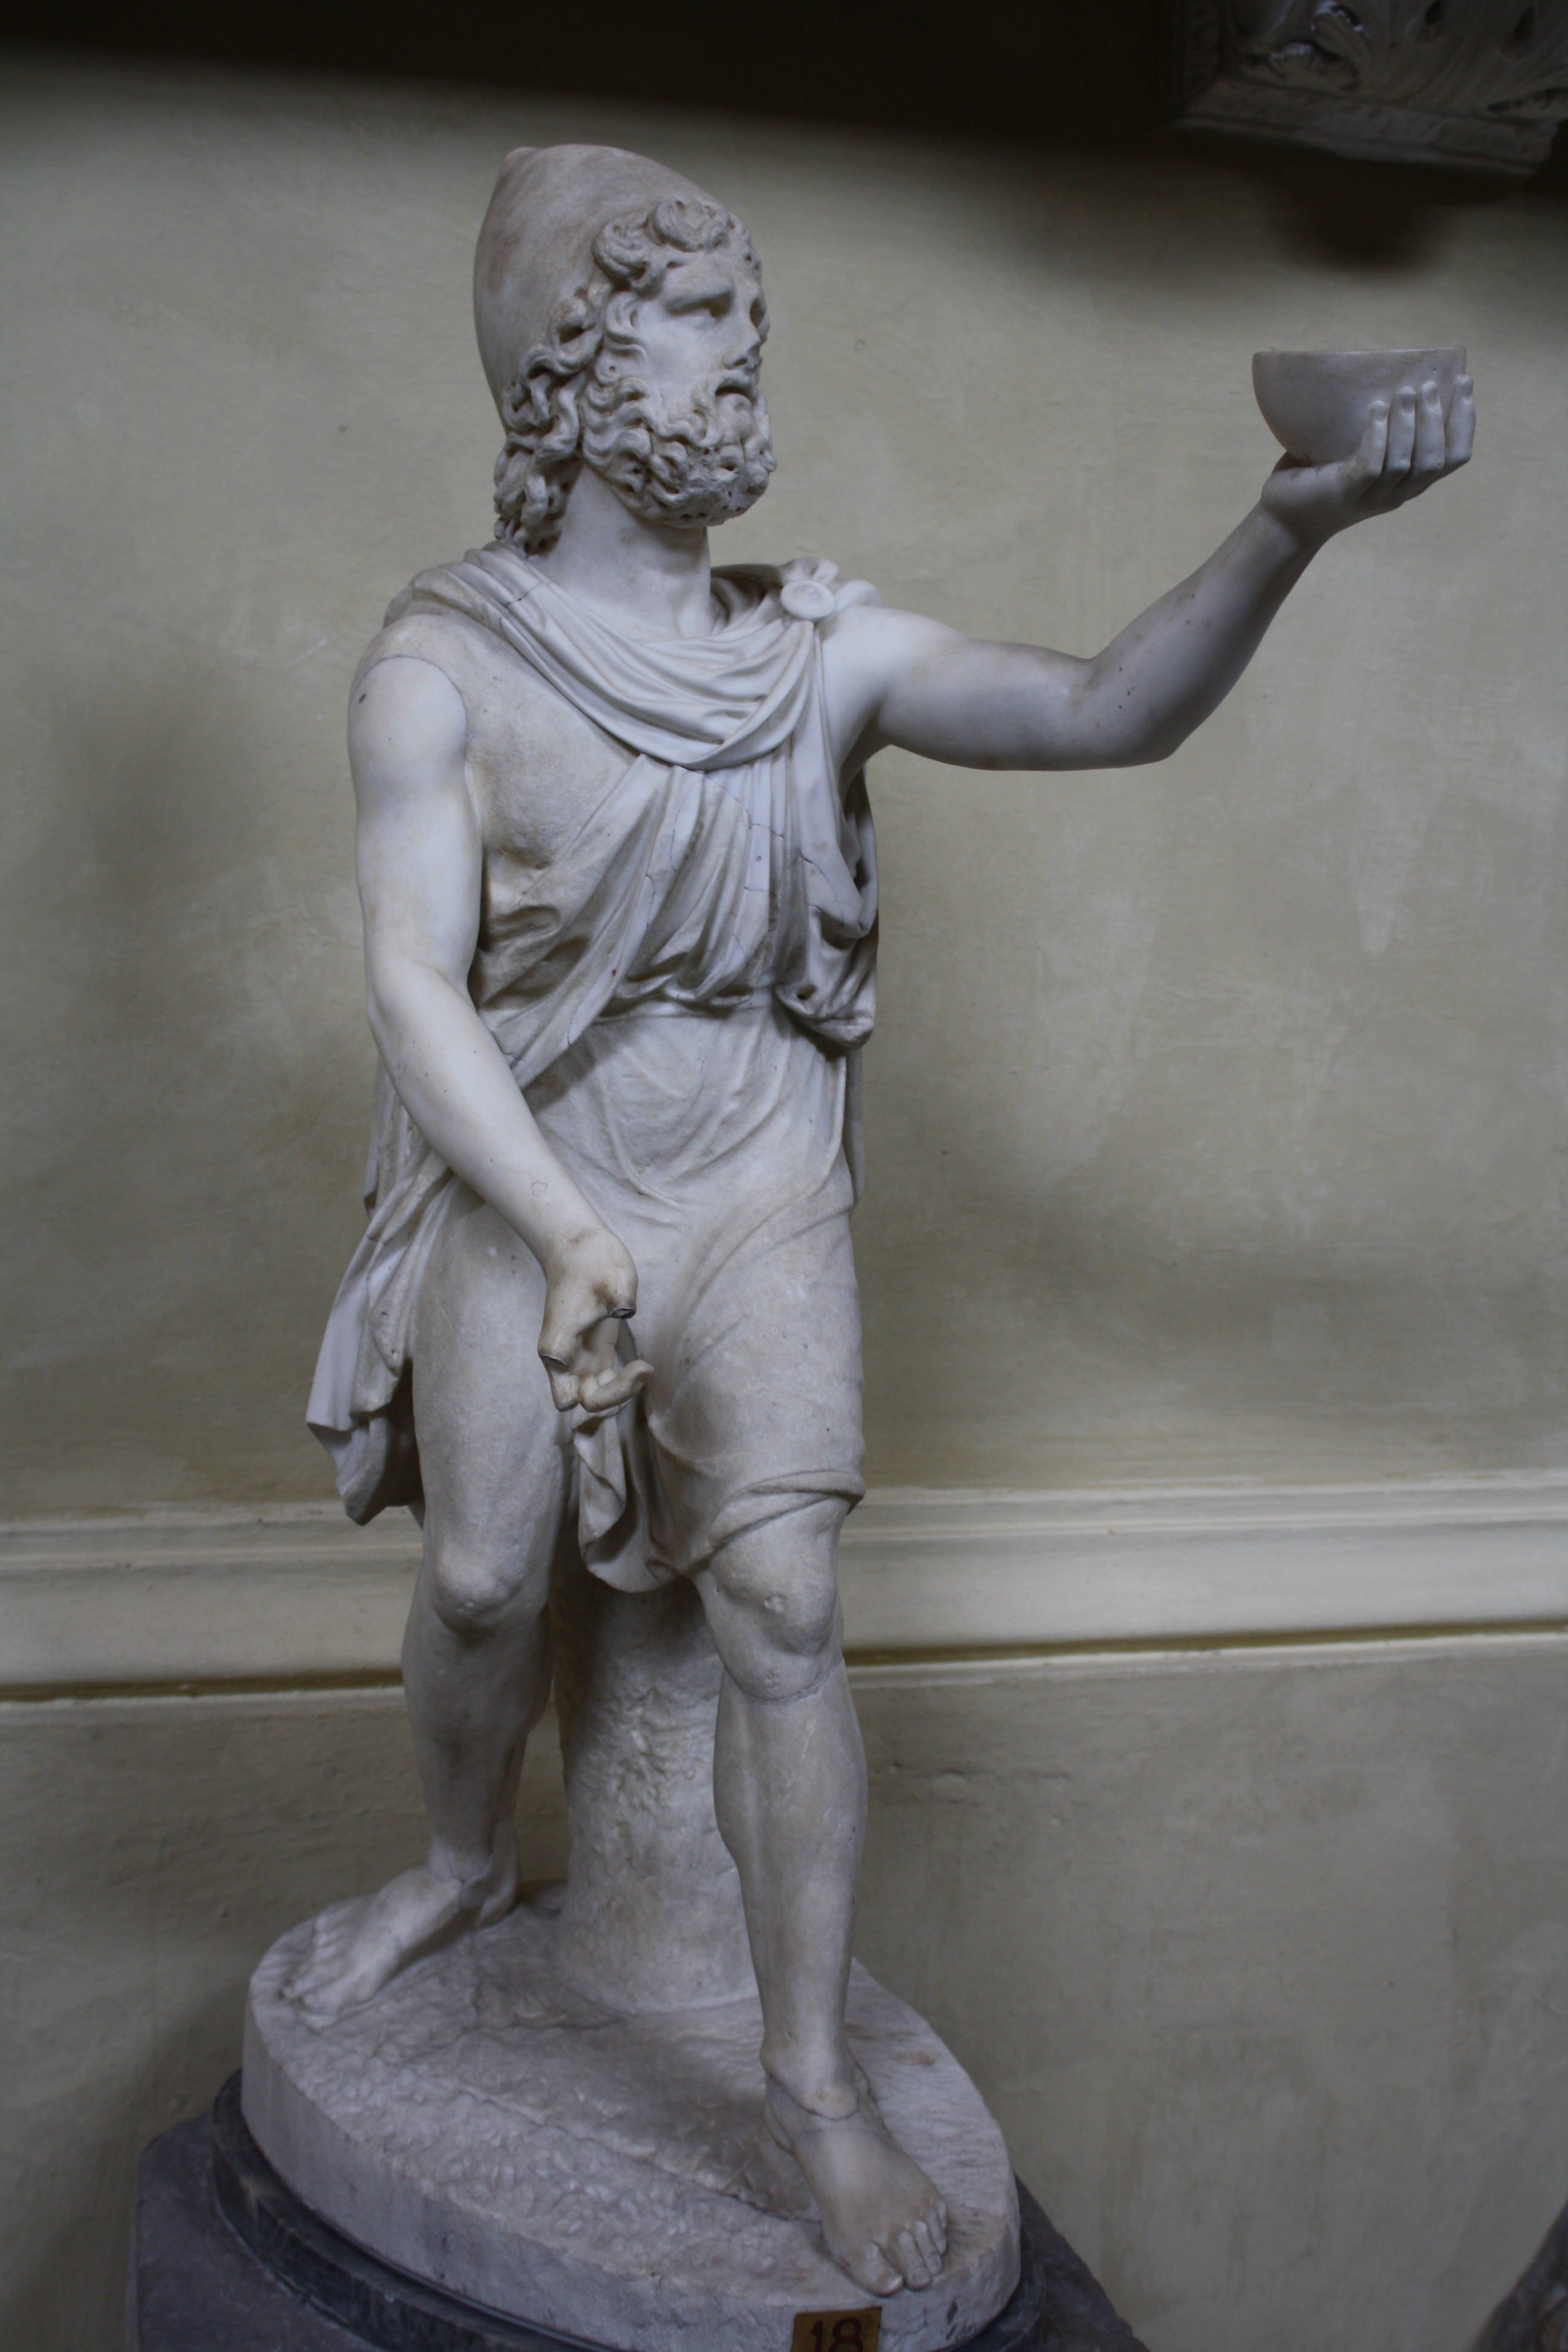 odysseus a hero Best answer: odysseus fought gloriously on behalf of the greeks in troy and was considered a war hero of sorts because of it but he became to full of himself and .